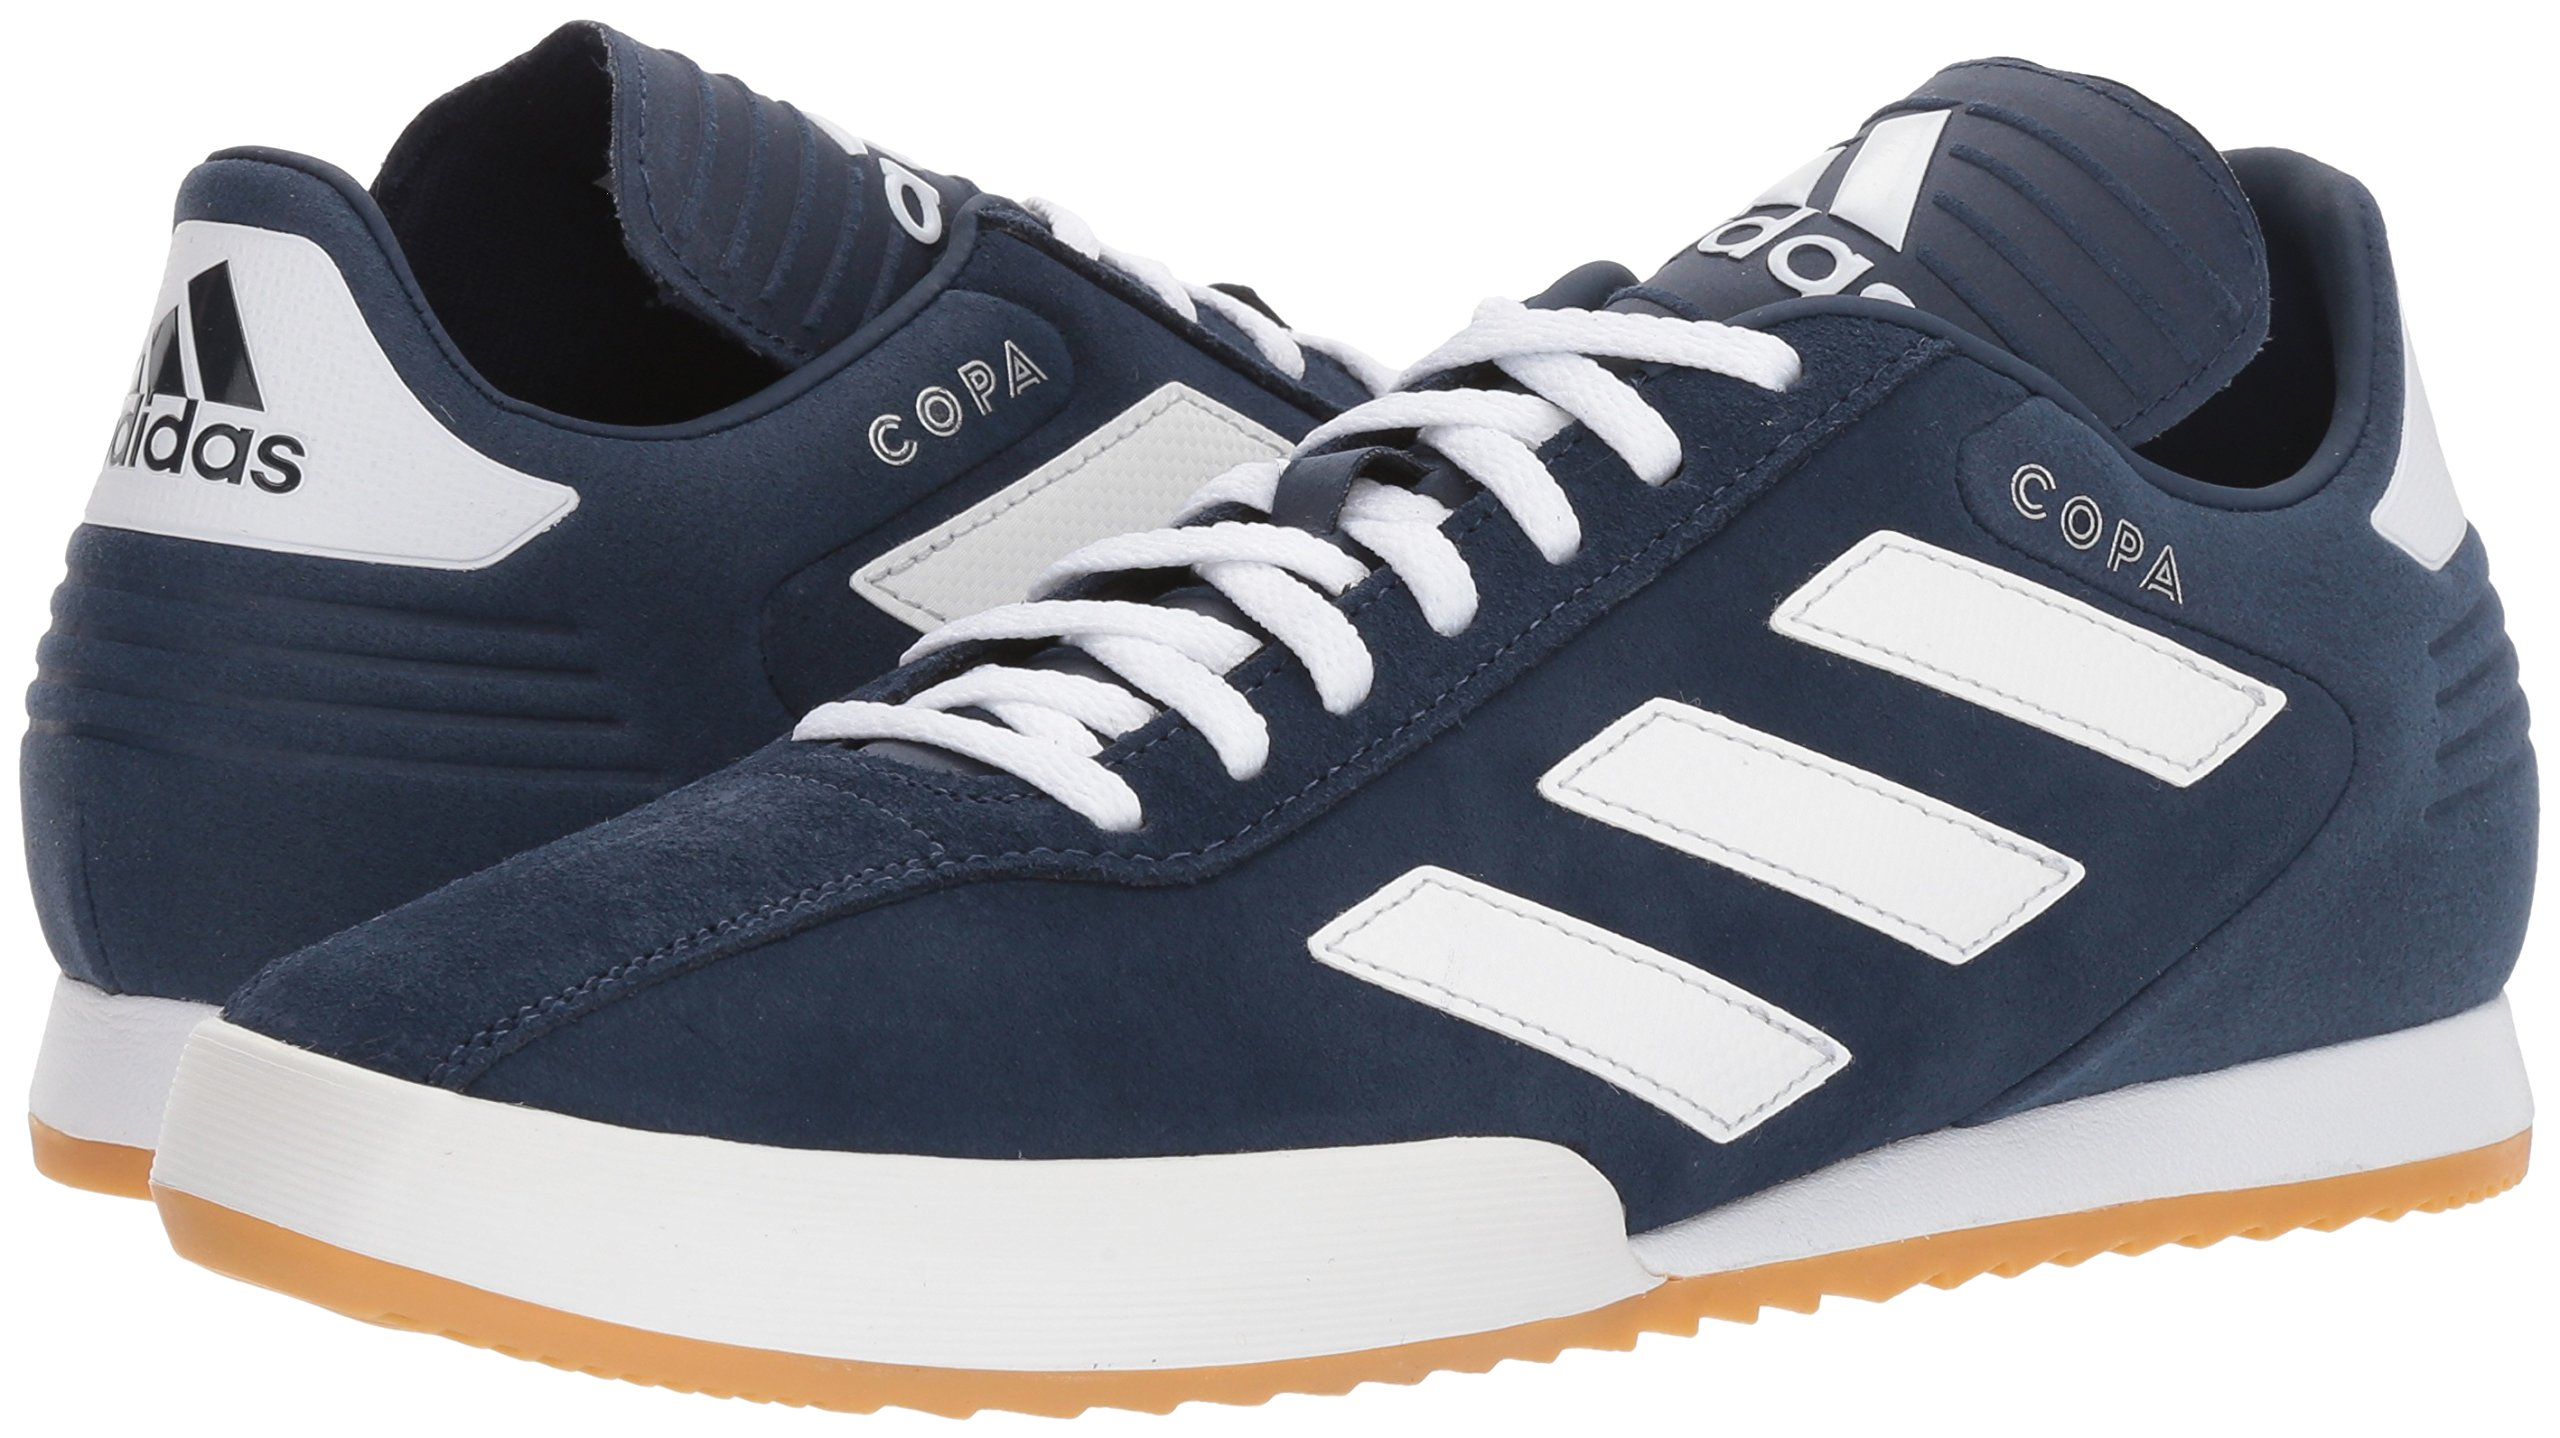 adidas Men's Copa Super Soccer Shoe White/Collegiate Navy, 7 M US by adidas (Image #6)